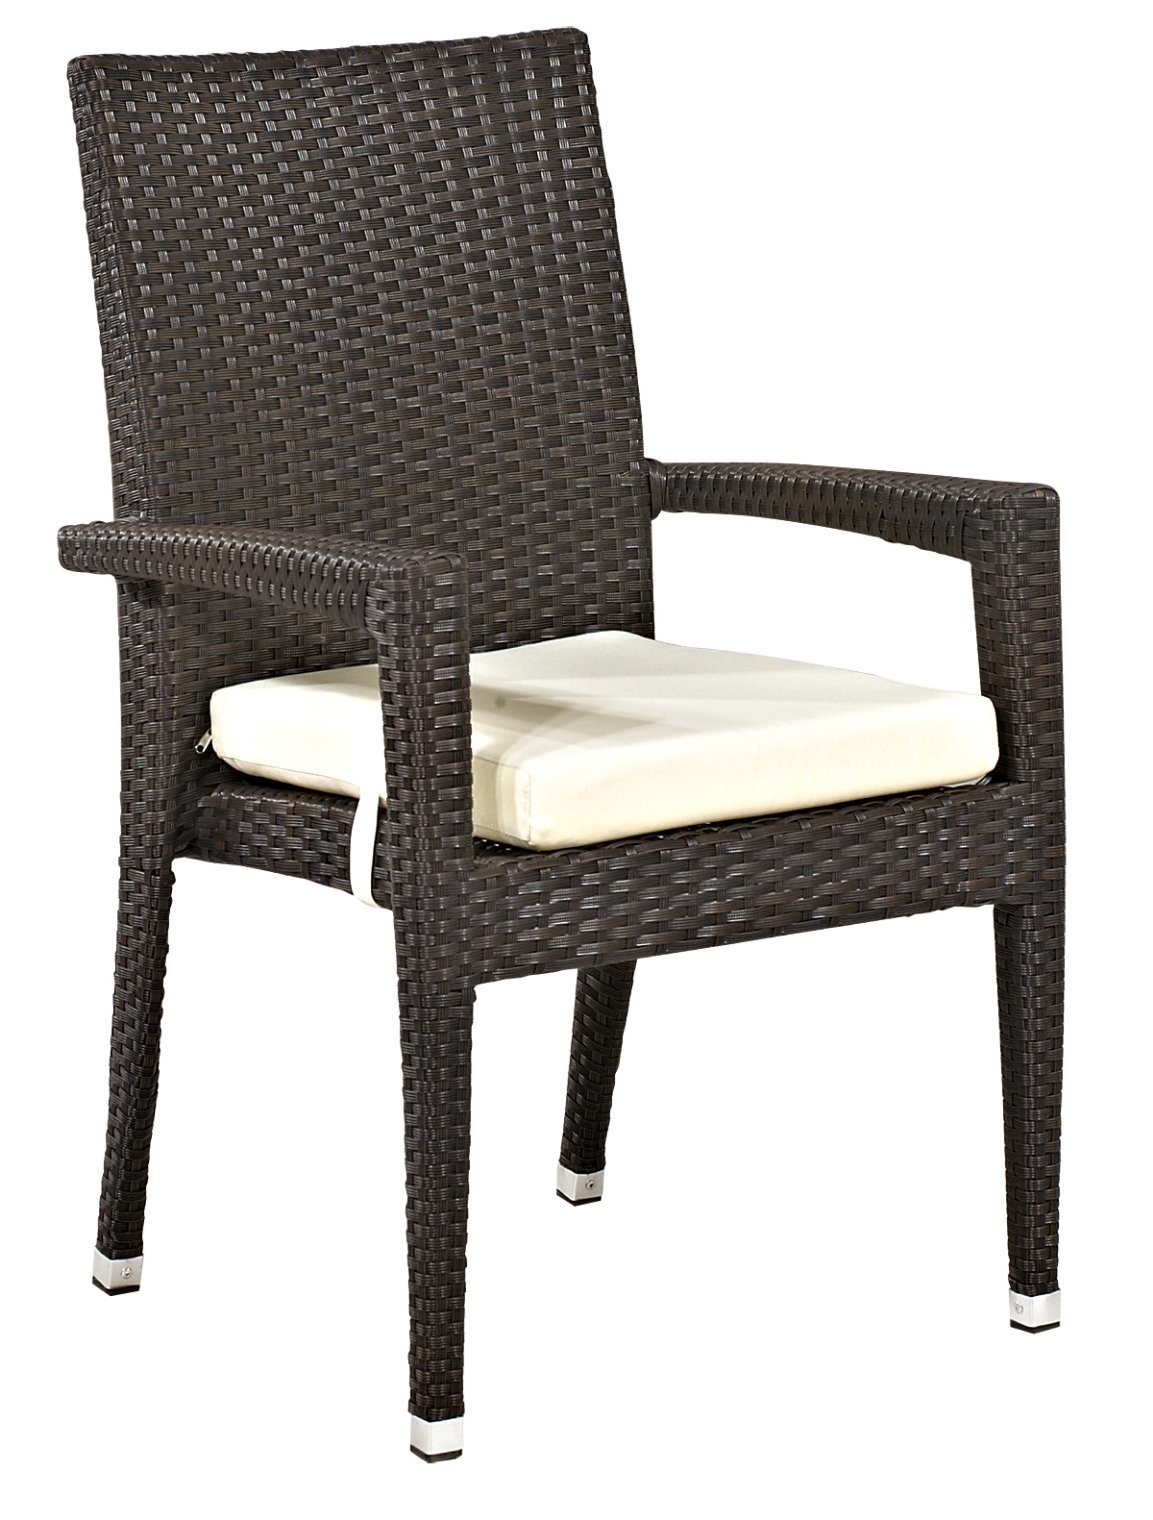 Garden Patio Wicker / Rattan Dining Set - Outdoor Furniture (LN-1011) pictures & photos